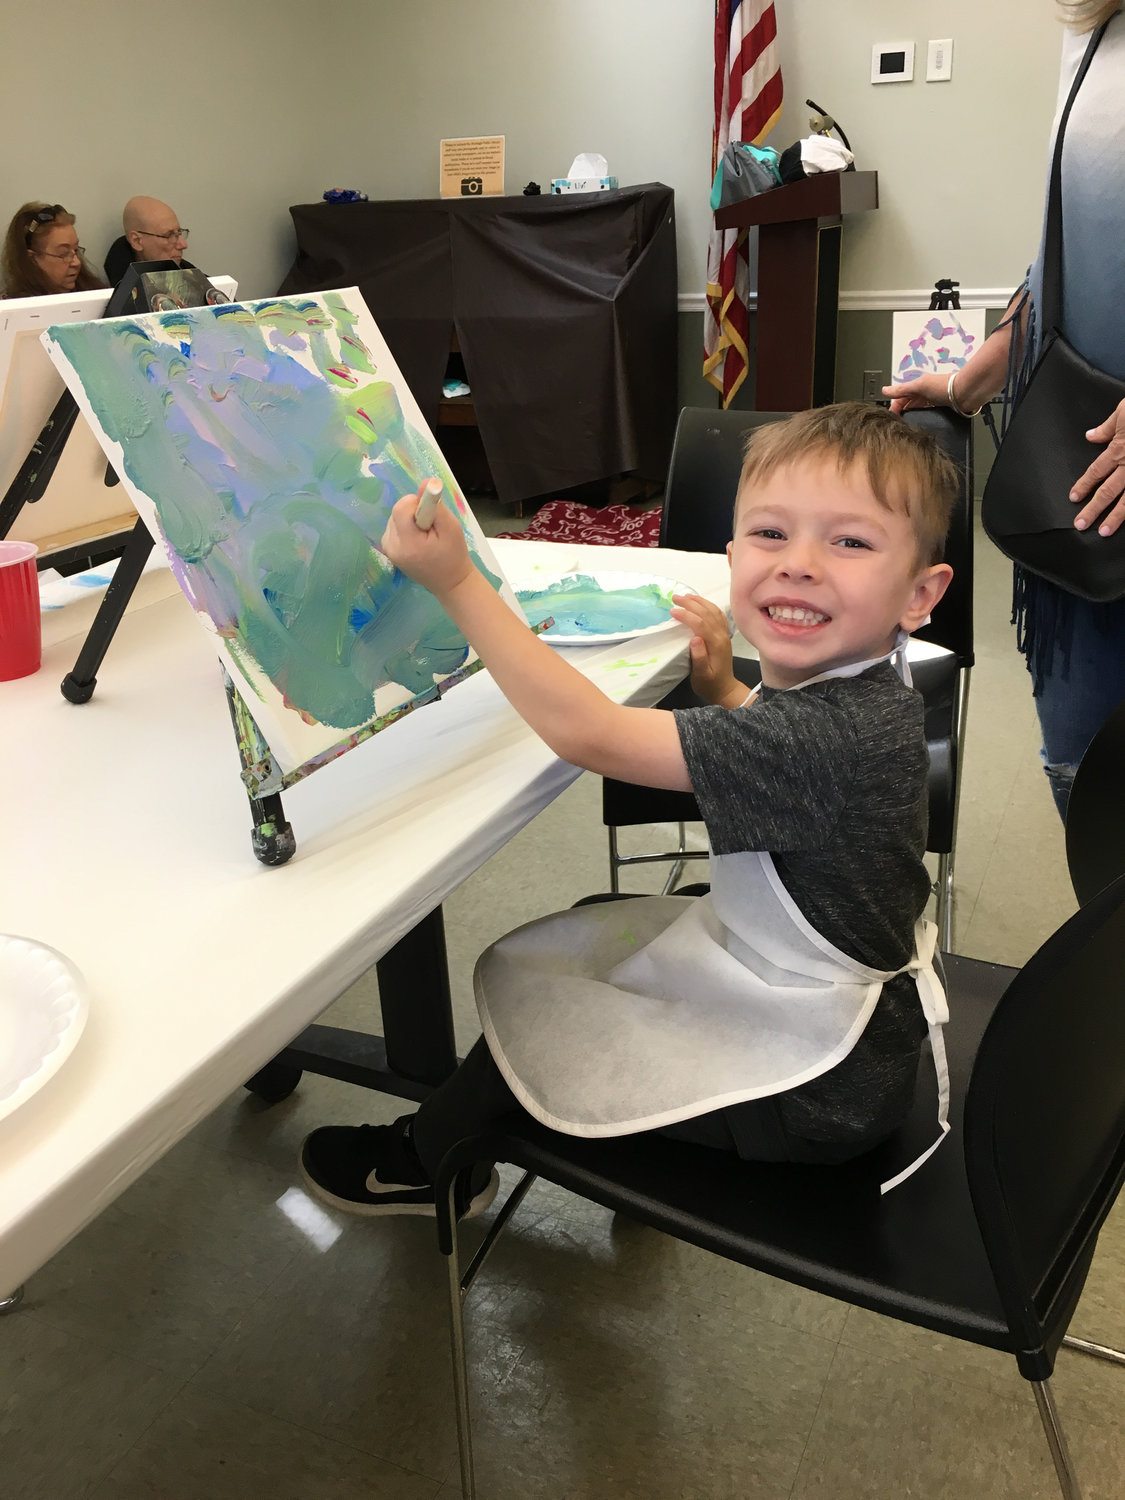 Three-year-old Jaxon Santopietro created an abstract painting in the style of DogVinci.